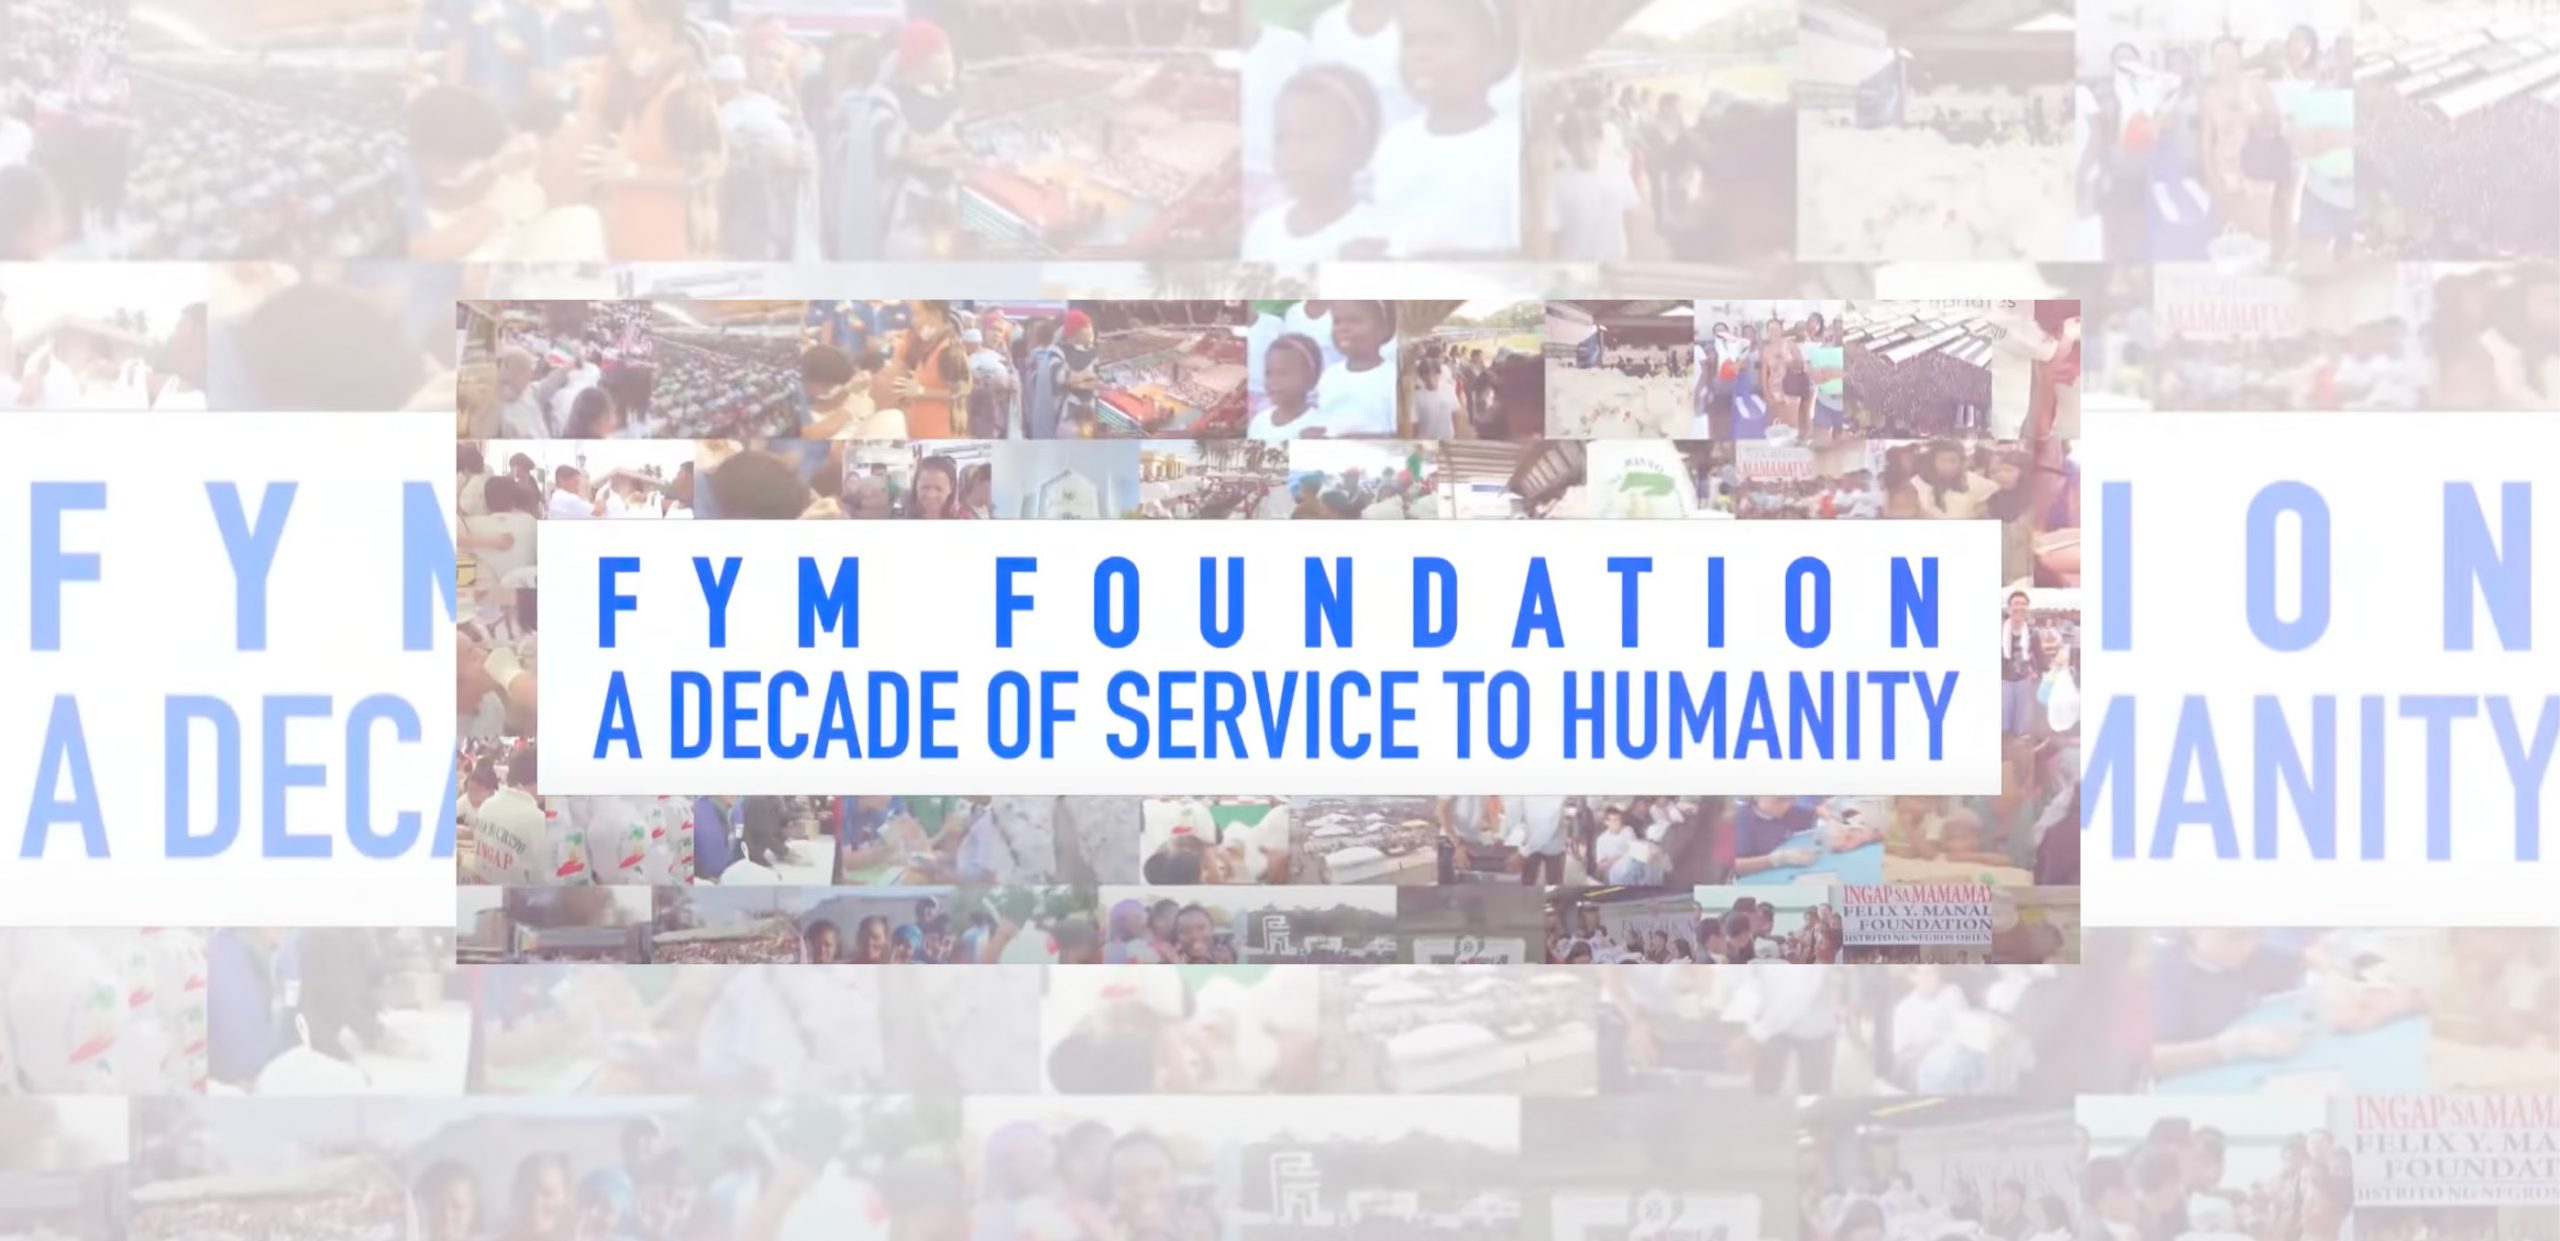 FYM Foundation: A Decade of Service to Humanity | Aid to Humanity